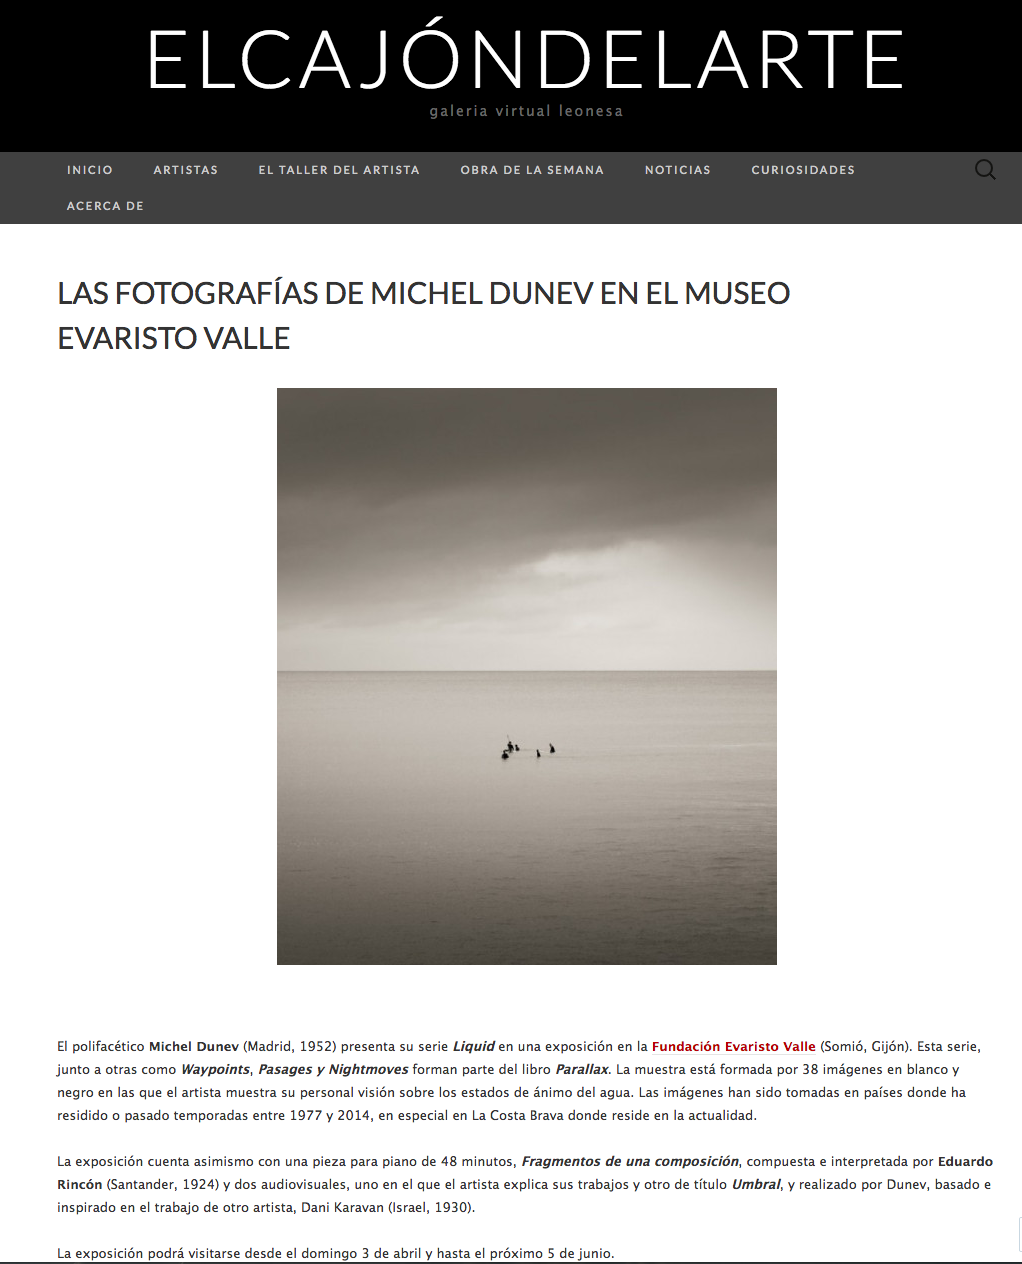 LIQUID Exhibition review in El Cajón del Arte